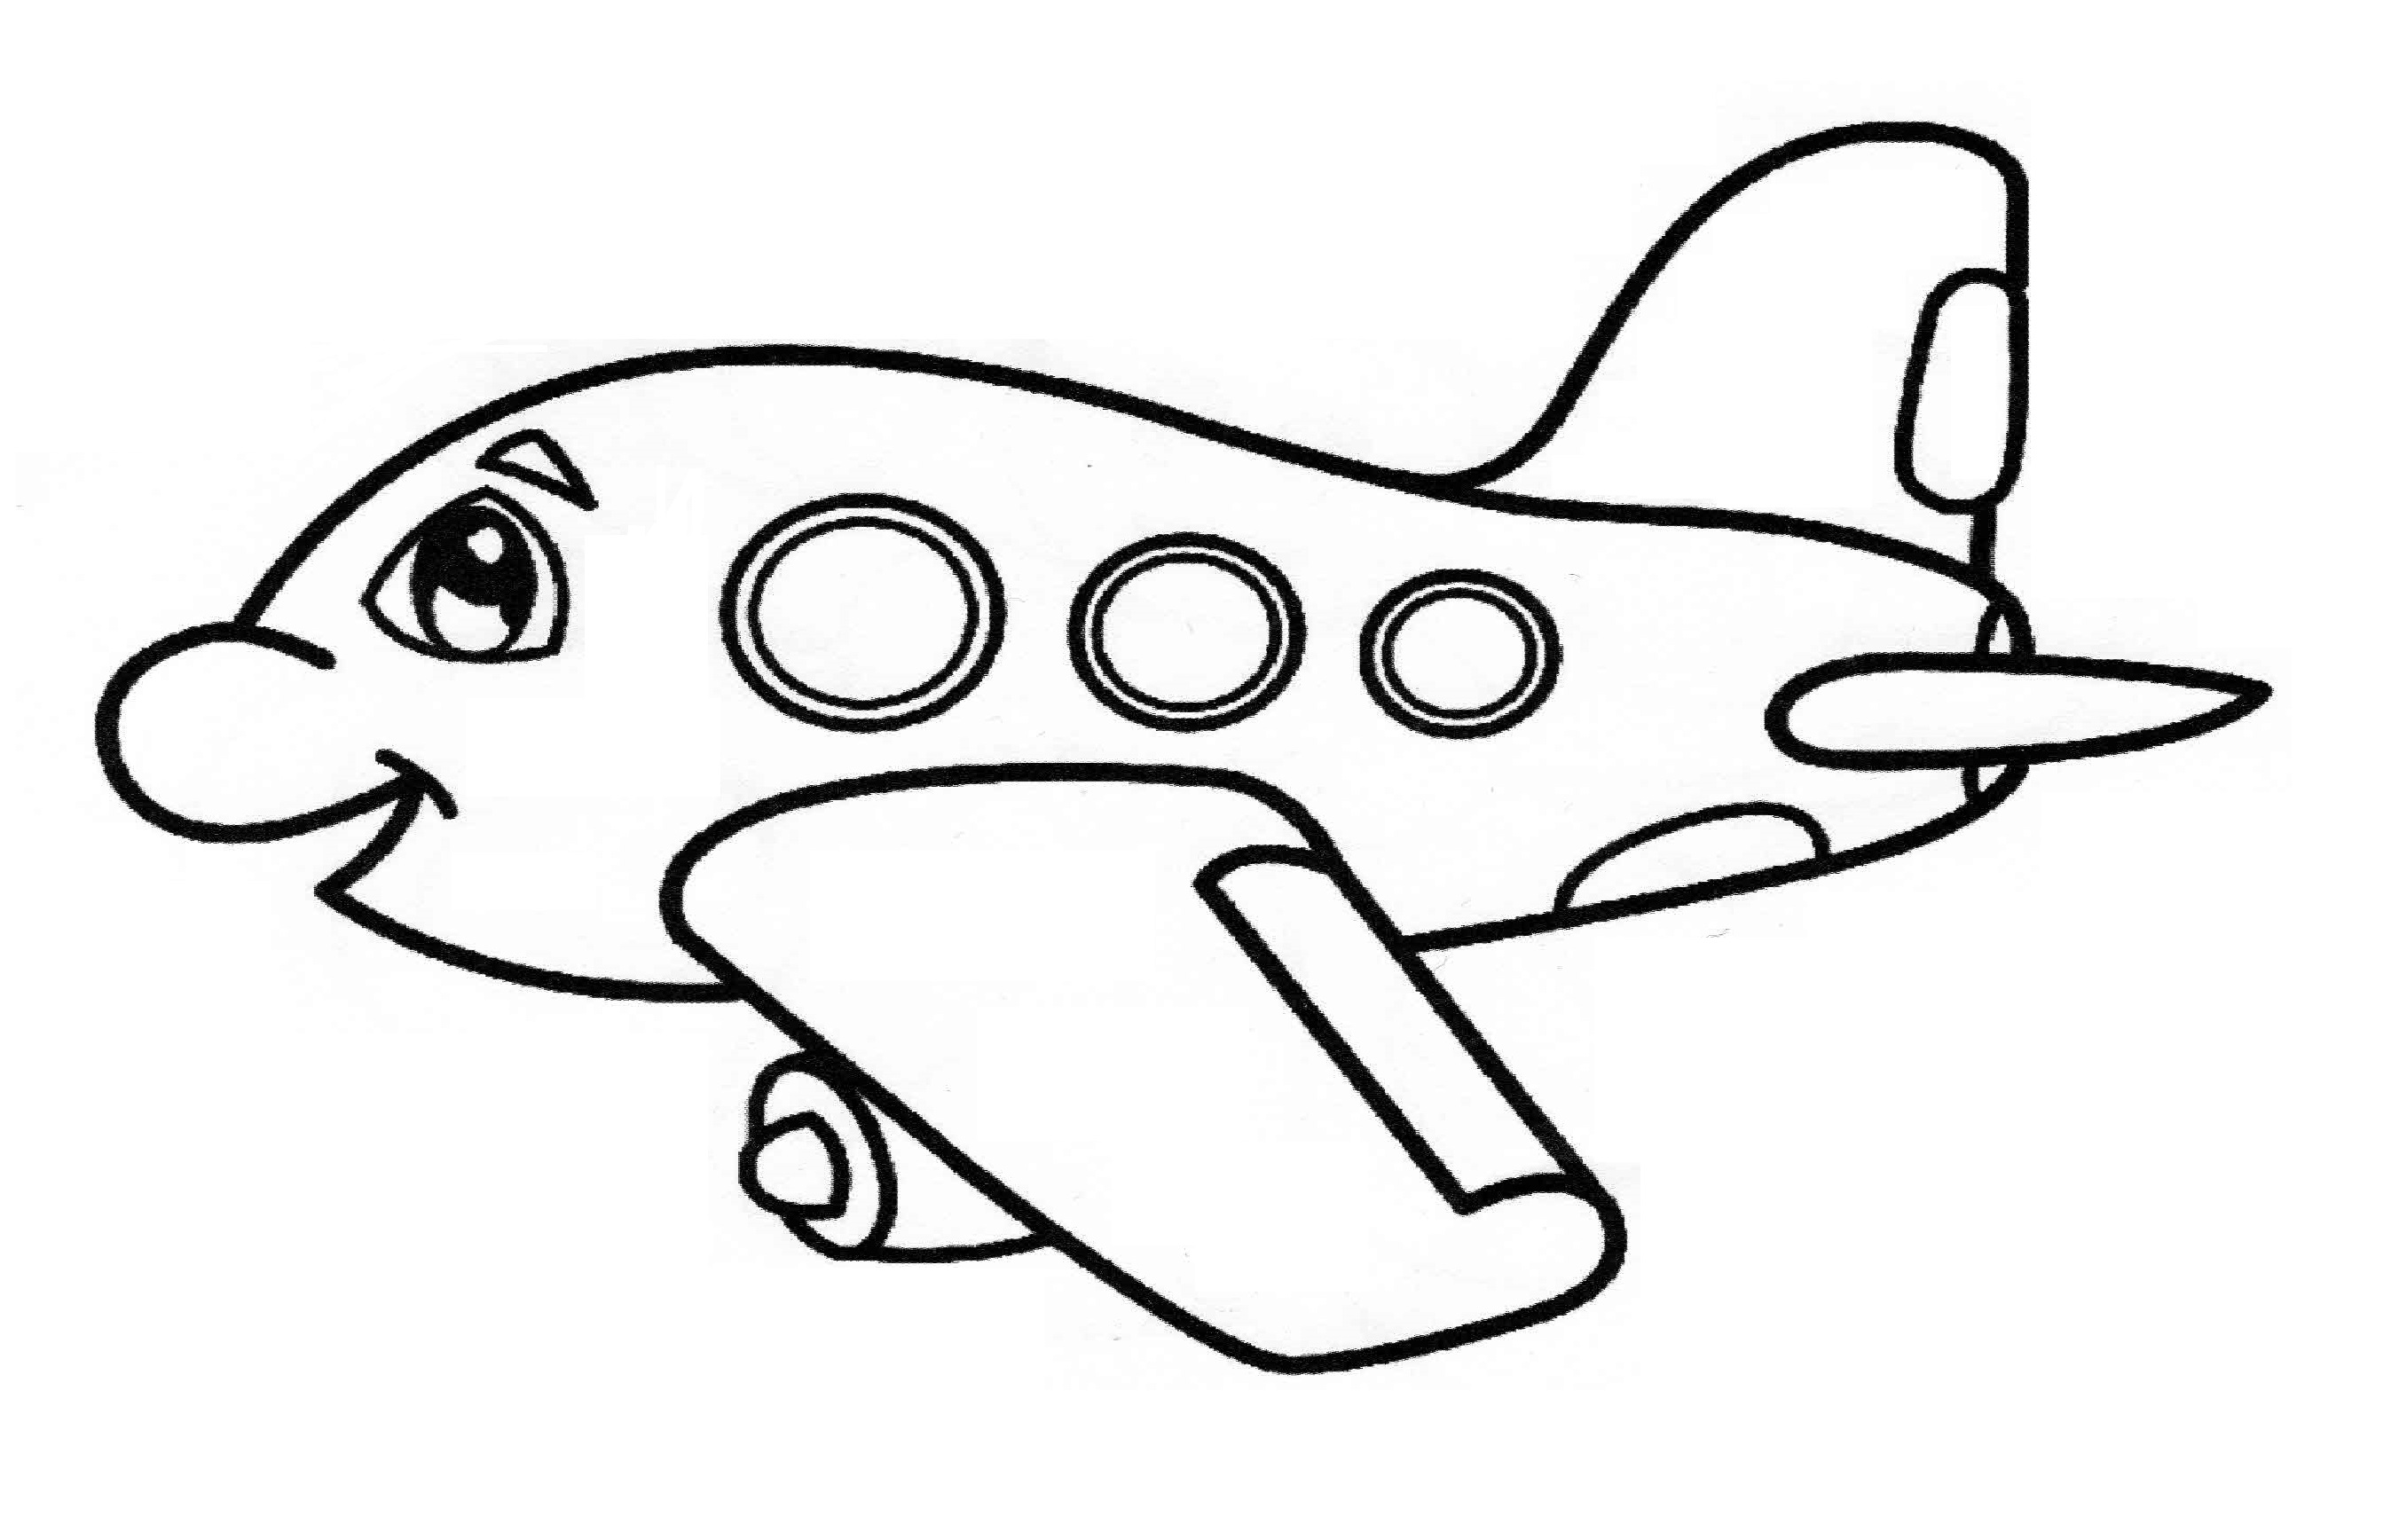 Airplane Coloring Page For Preschool And Kindergarten